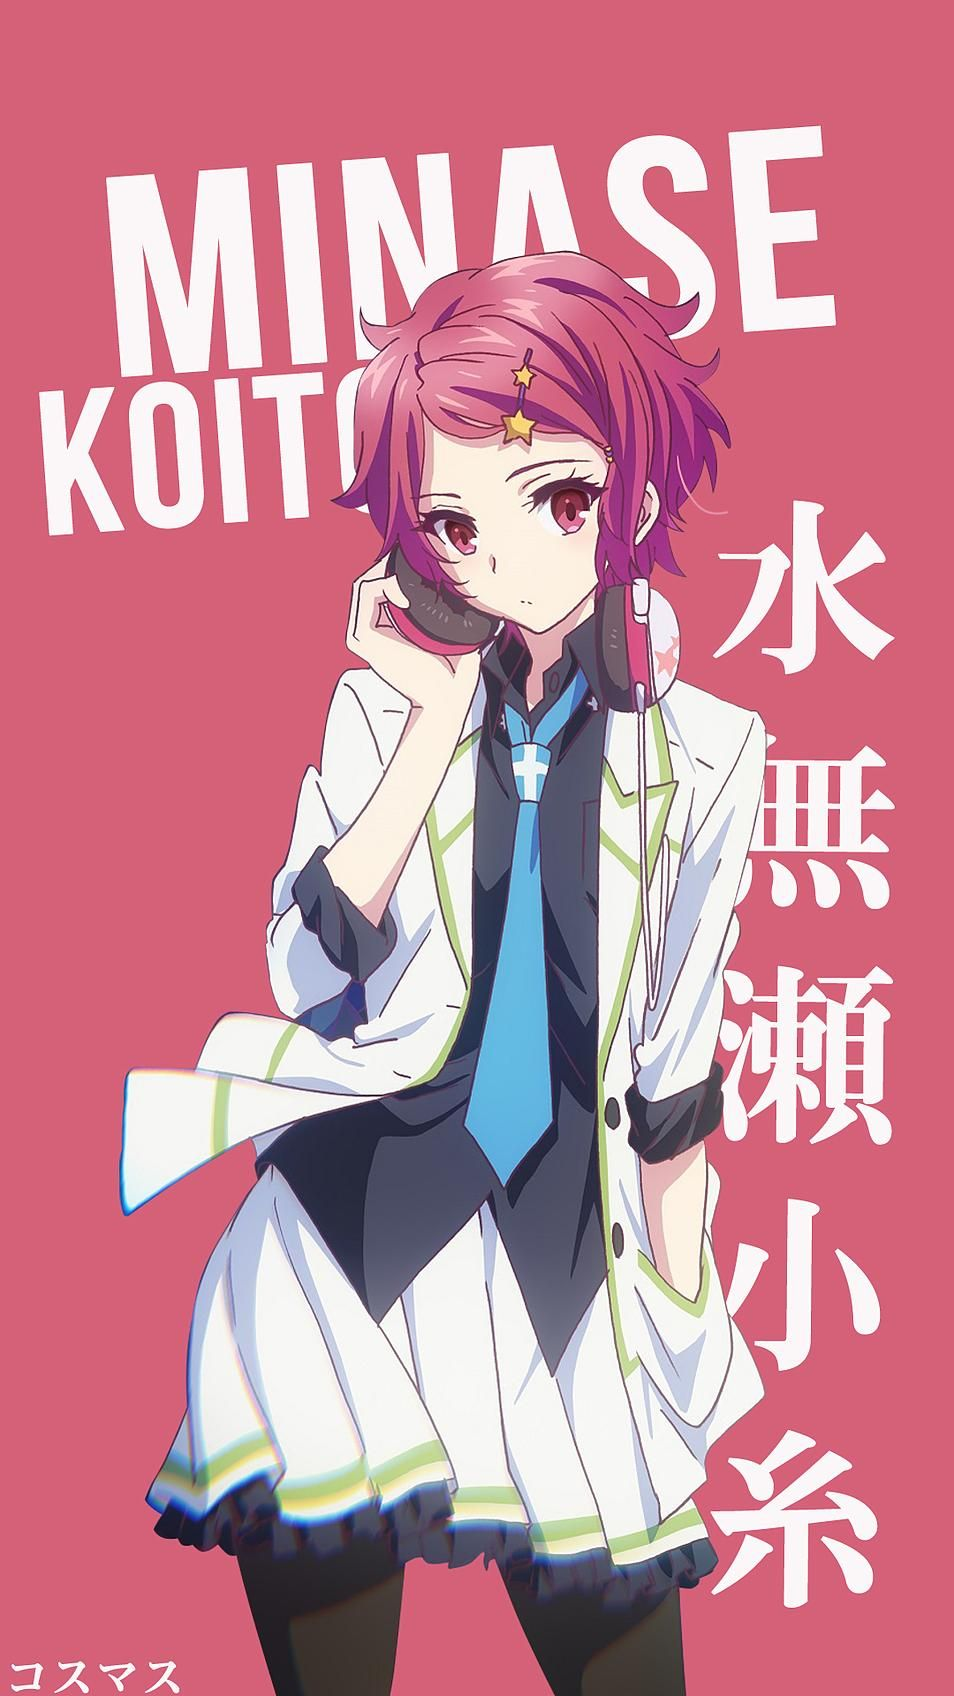 Minase Koito ~ Korigengi | Wallpaper Anime